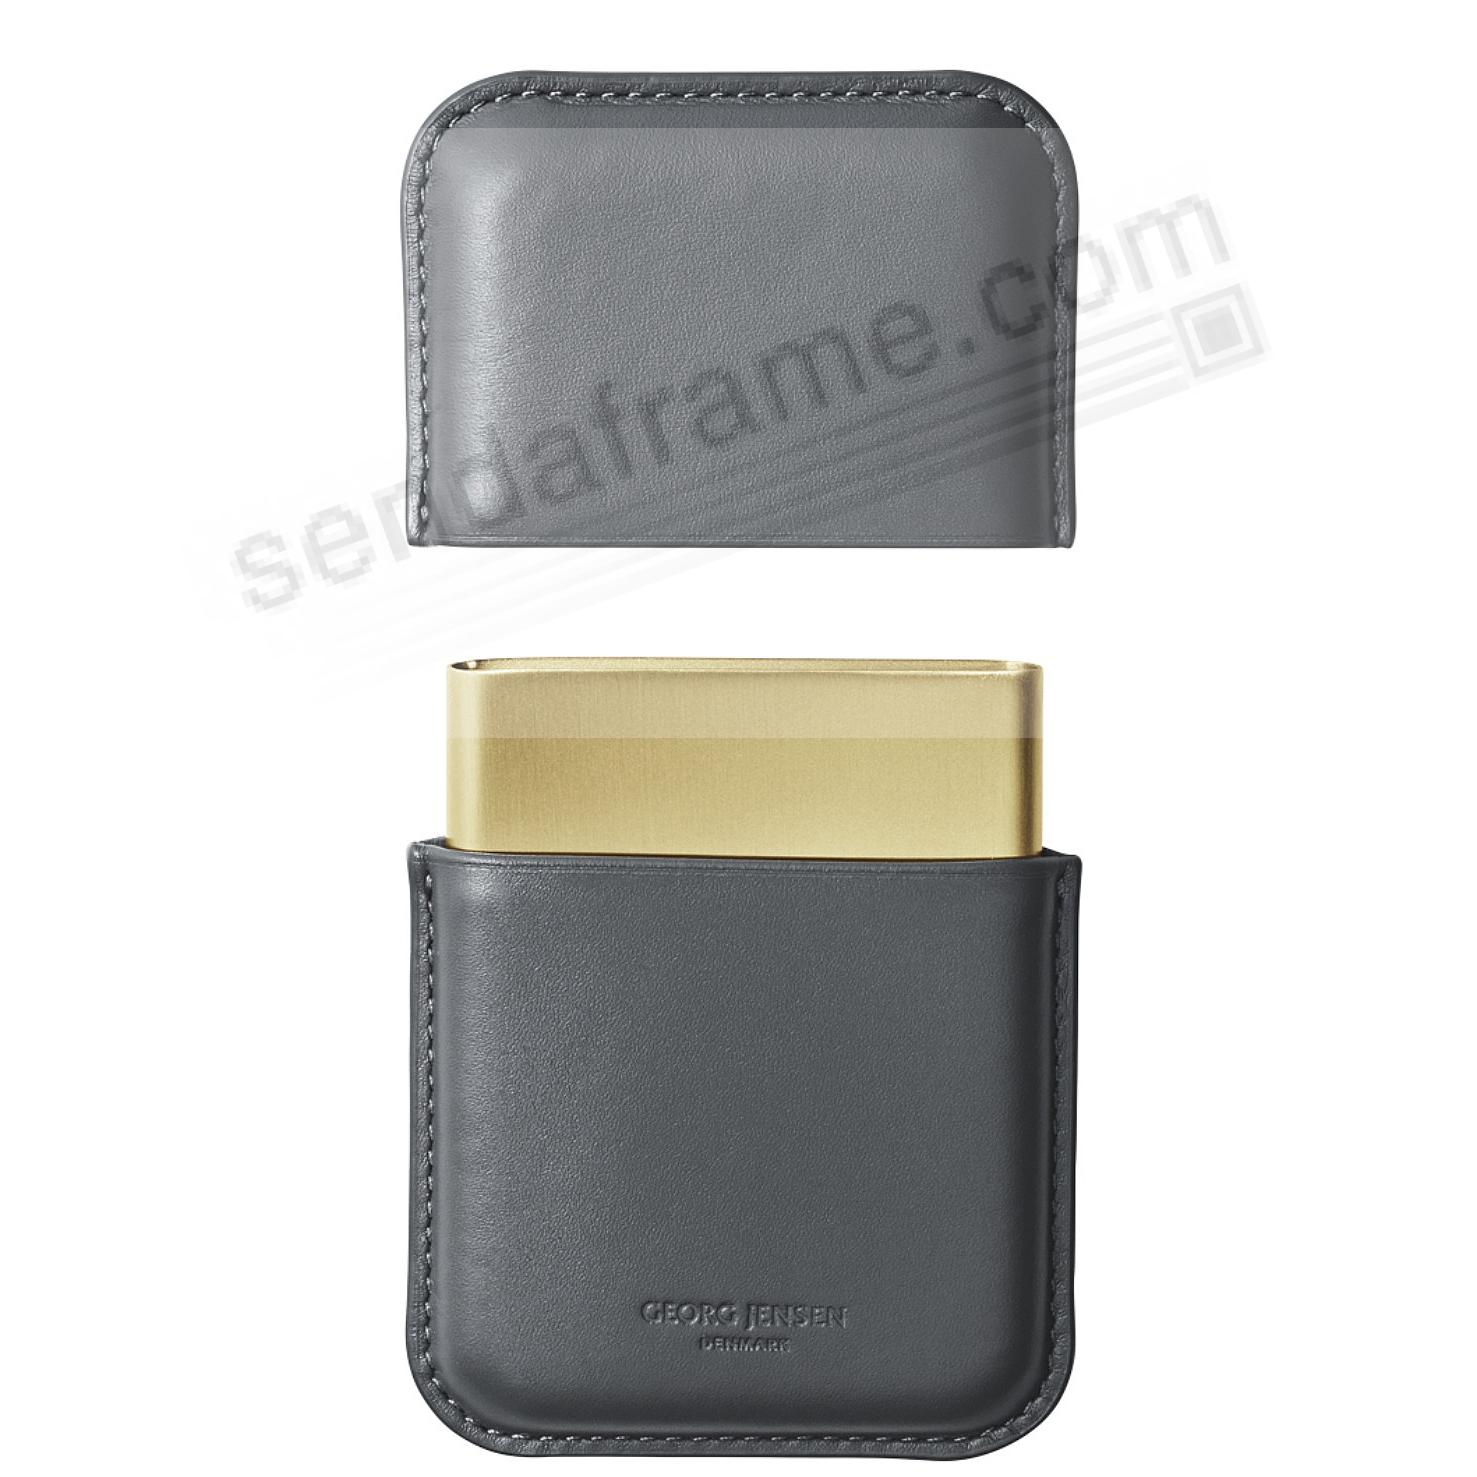 SHADES Collection Business Card Holder Grey Leather by Georg Jensen®